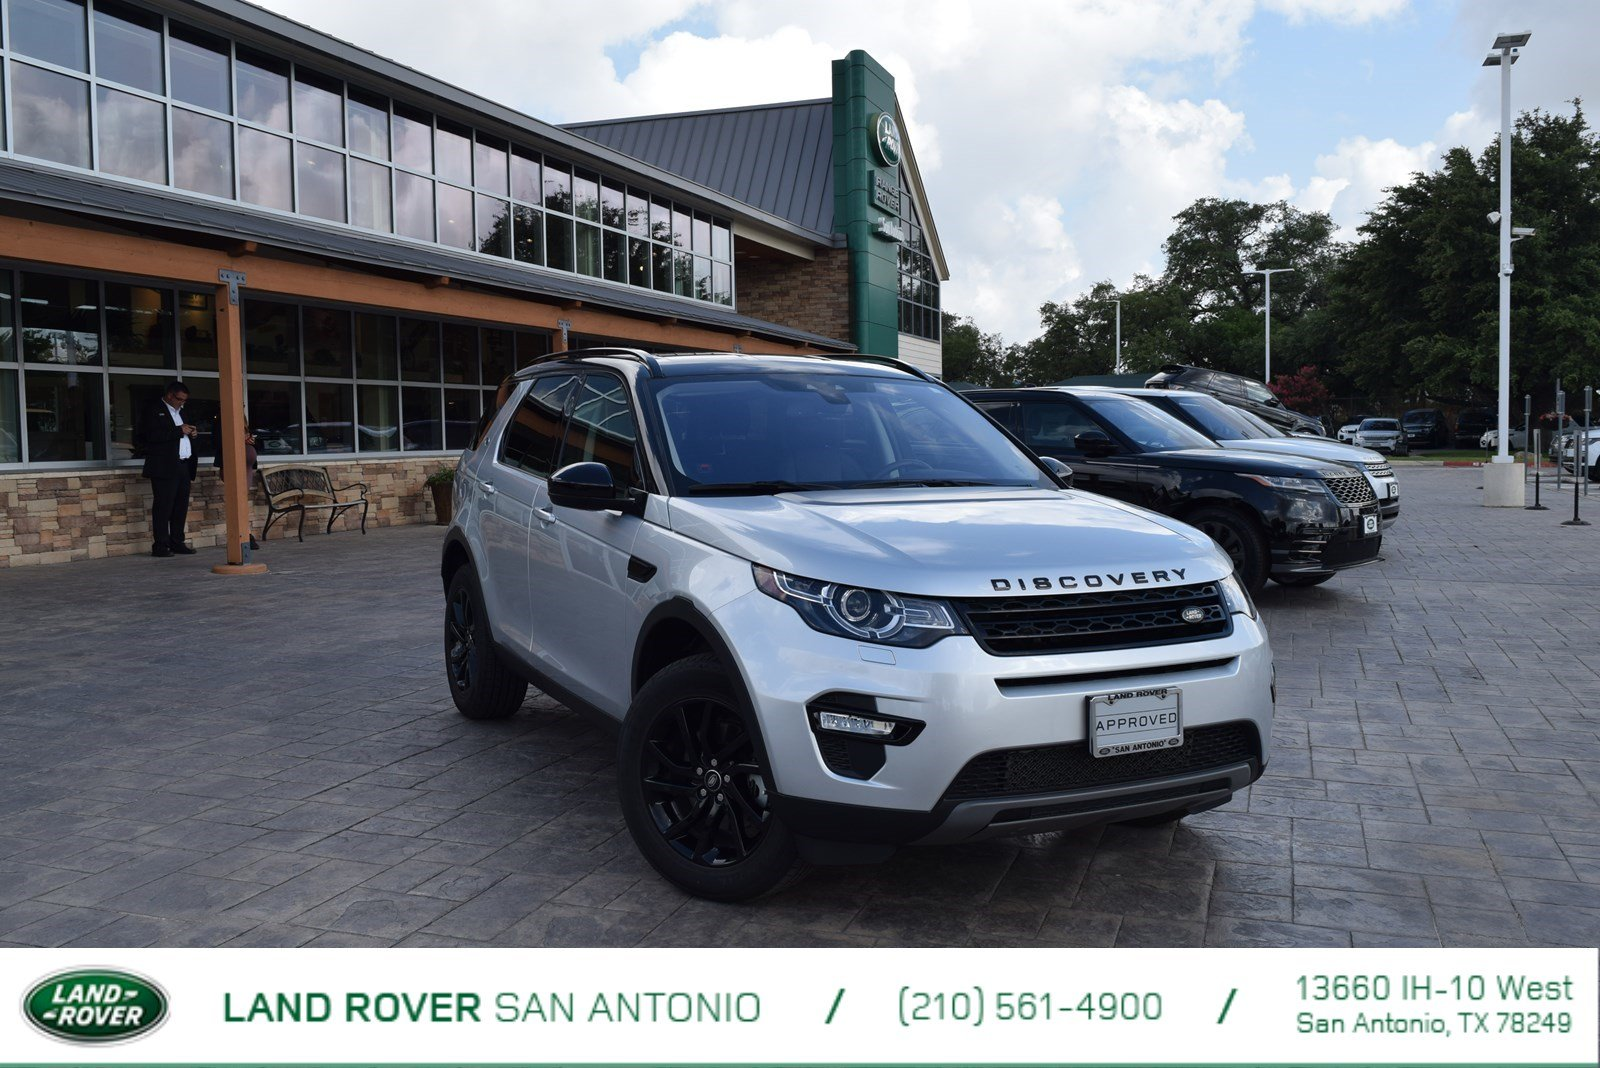 landrover cars reviews rating motor se land discovery tows ton and rover trend train road